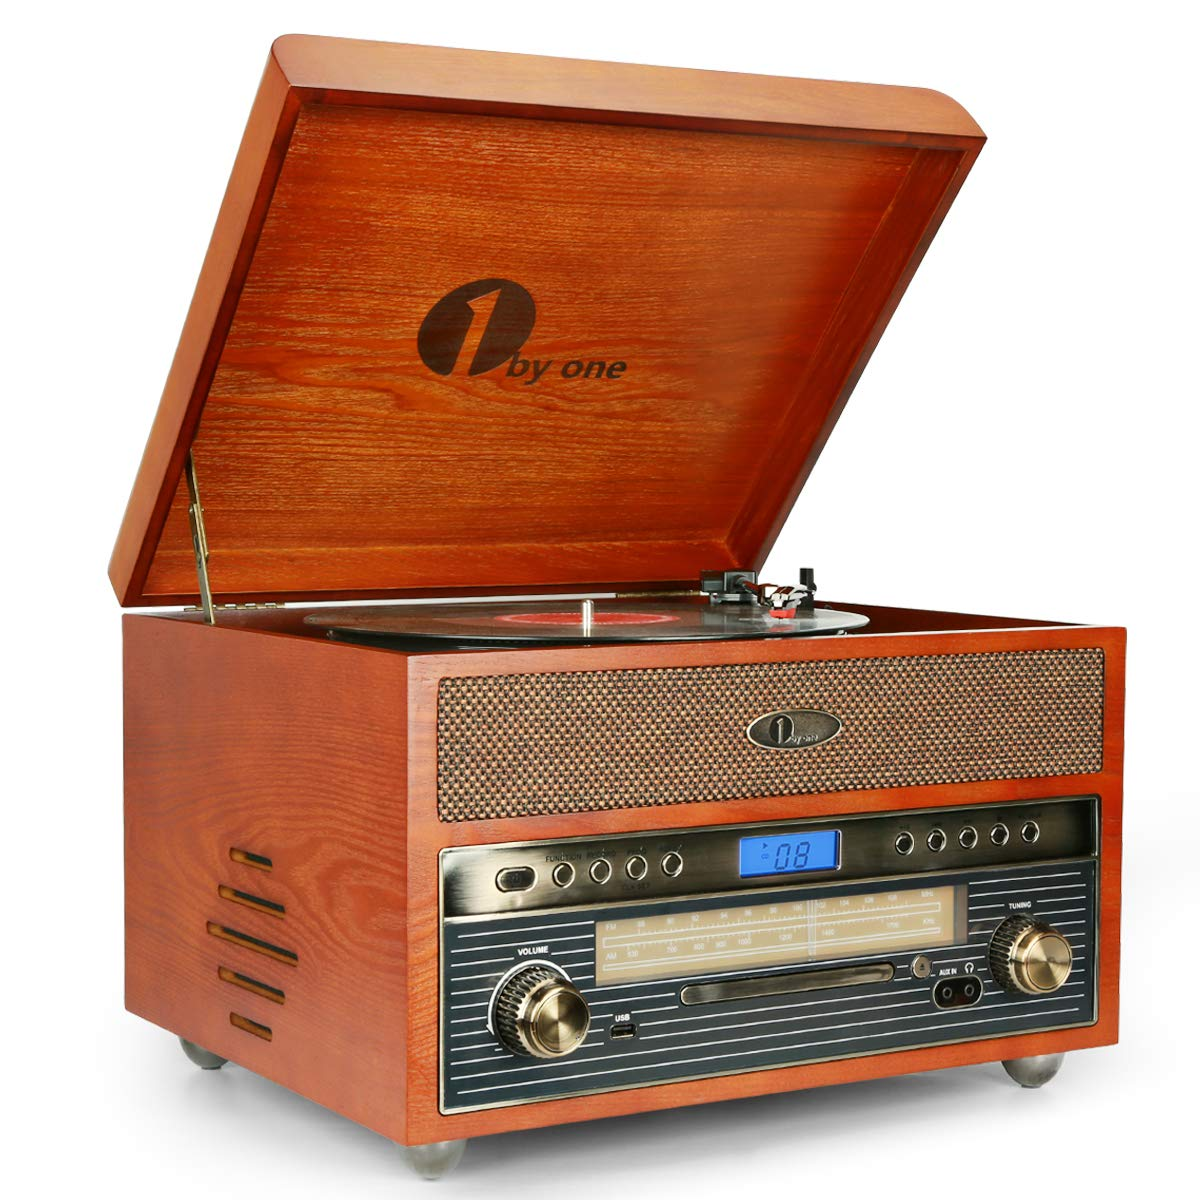 front facing 1byone Nostalgic Wooden Turntable